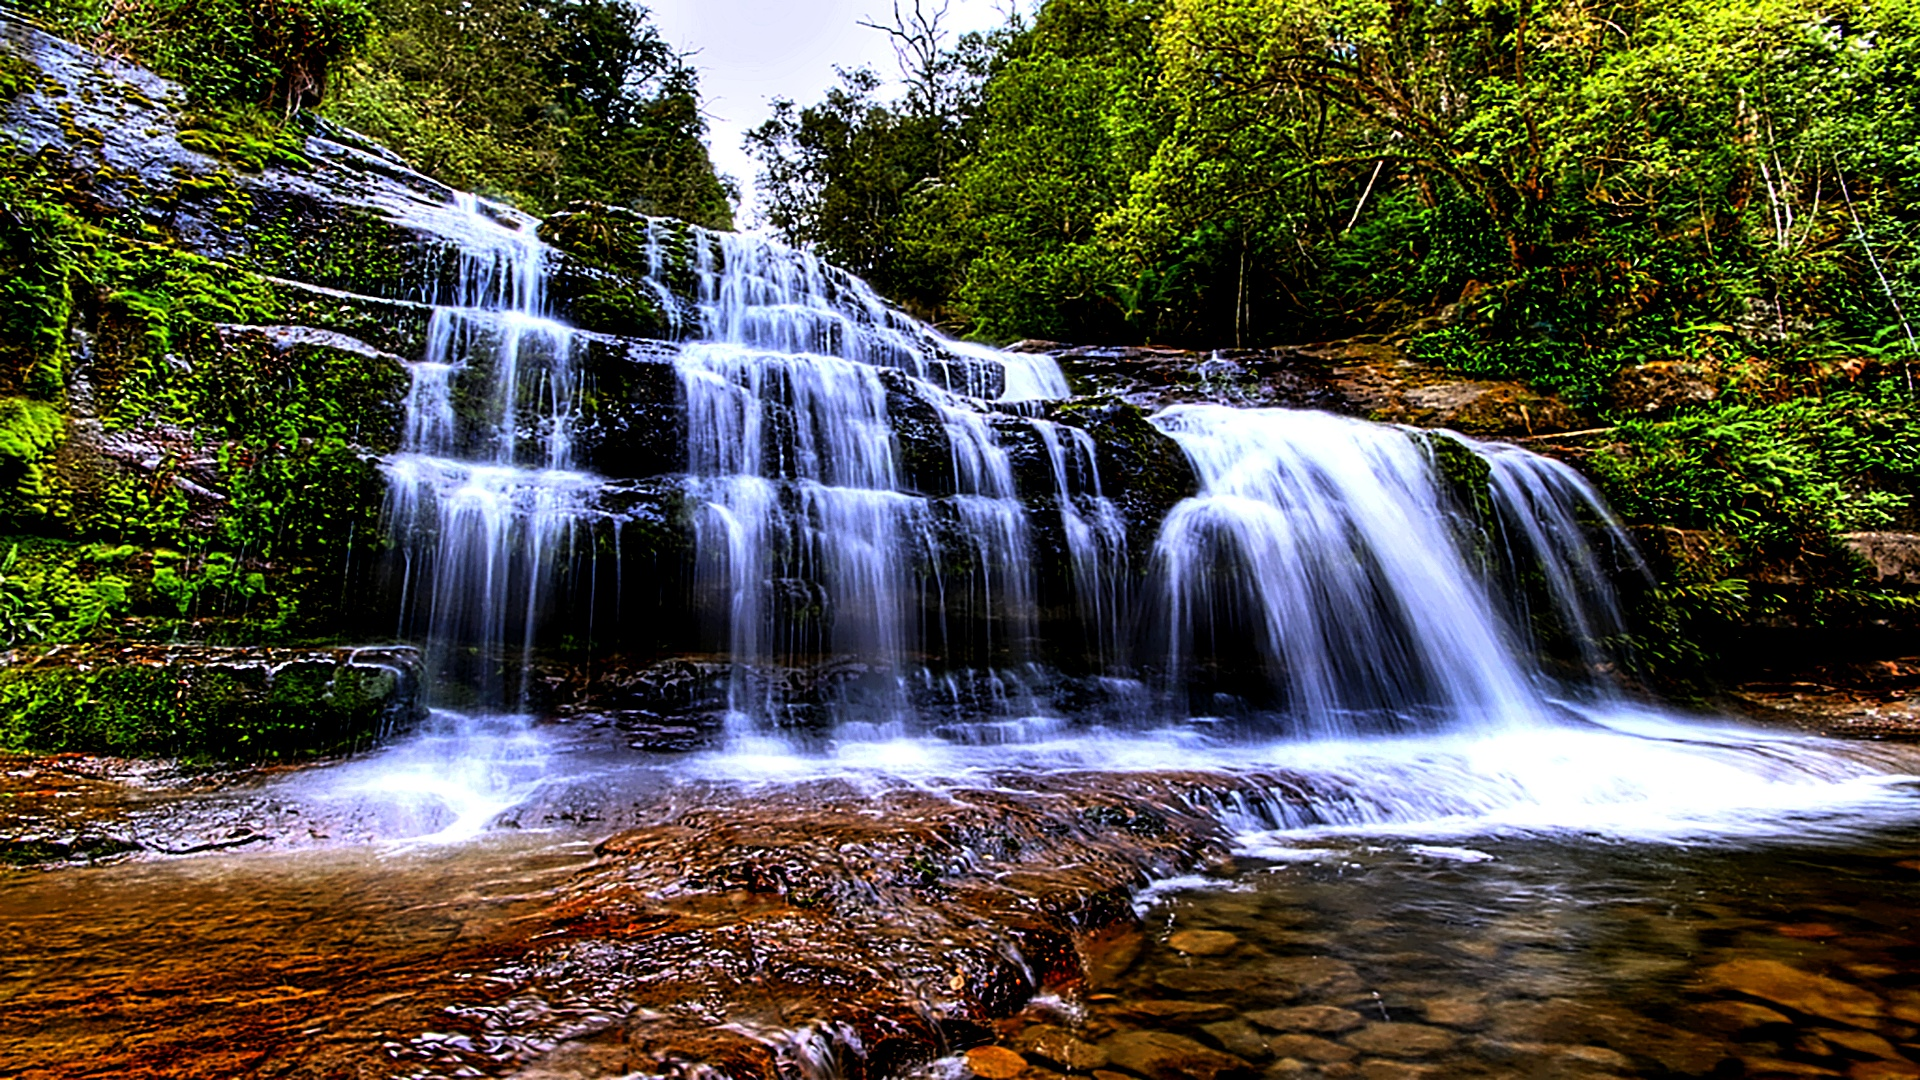 waterfall live wallpaper download which is under the waterfall 1920x1080